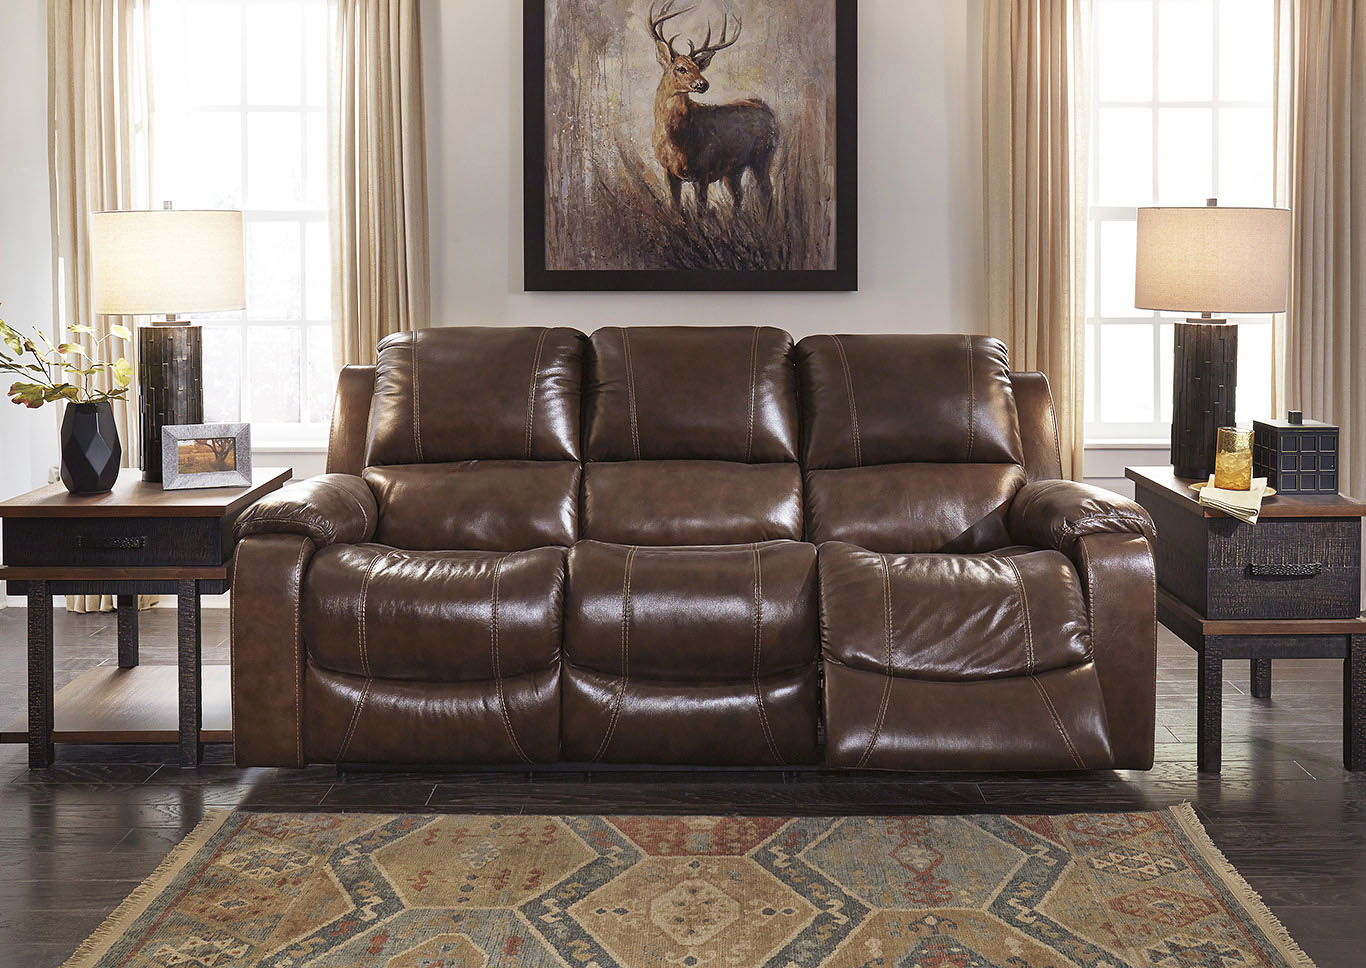 Rackingburg Mahogany Reclining Sofa,Signature Design By Ashley